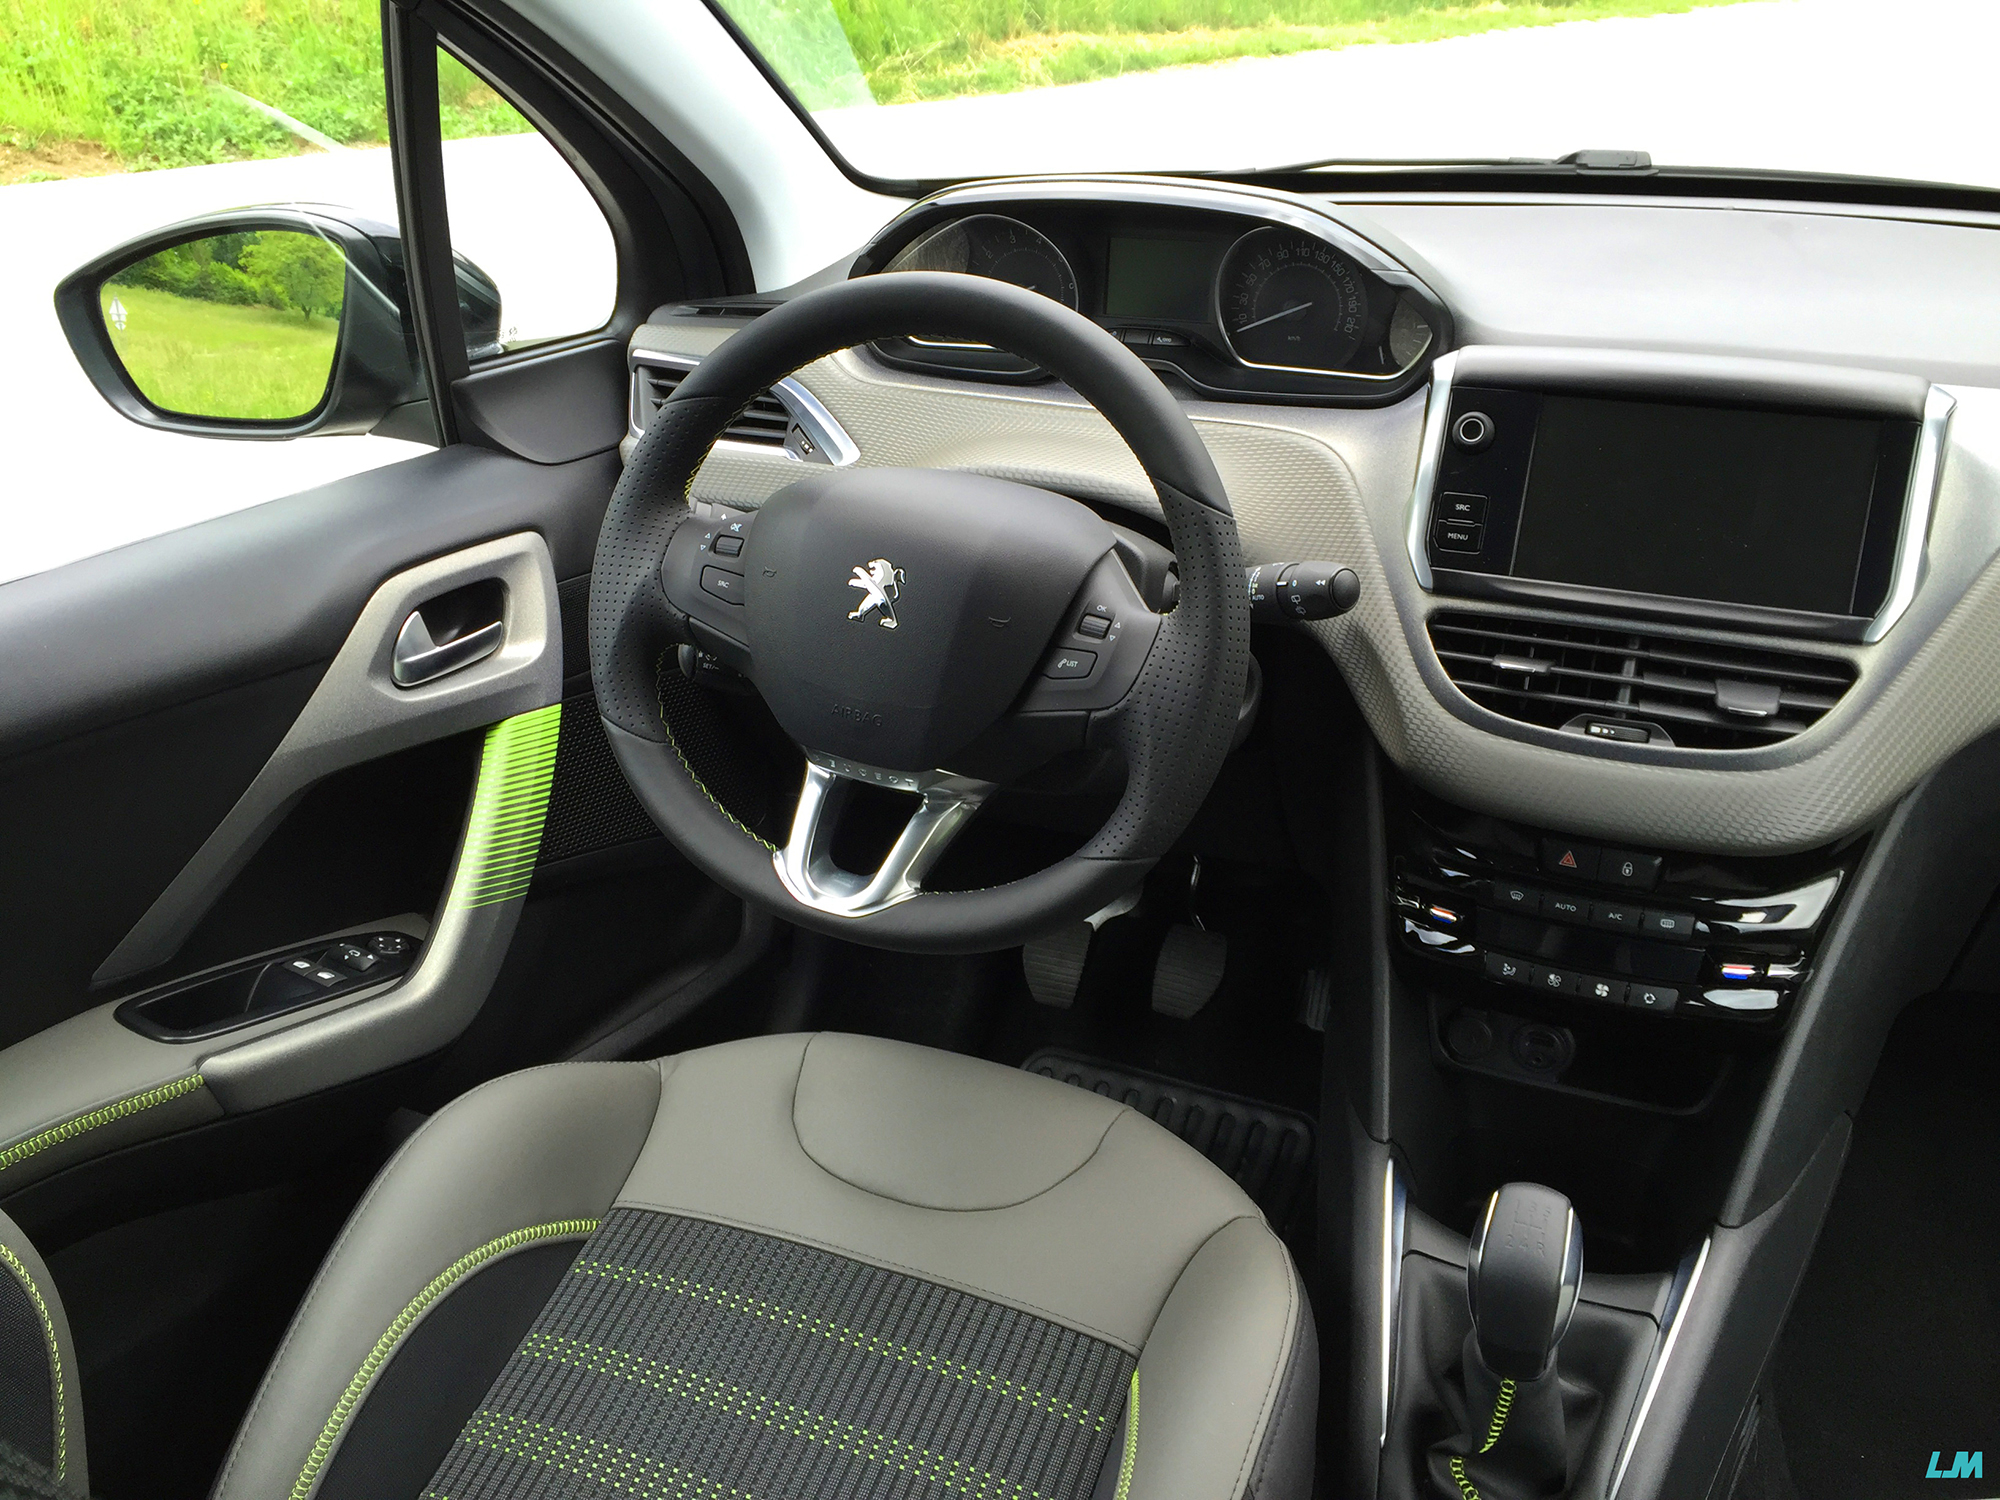 Essai nouvelle peugeot 208 pas qu 39 un simple face lift for Interieur peugeot 208